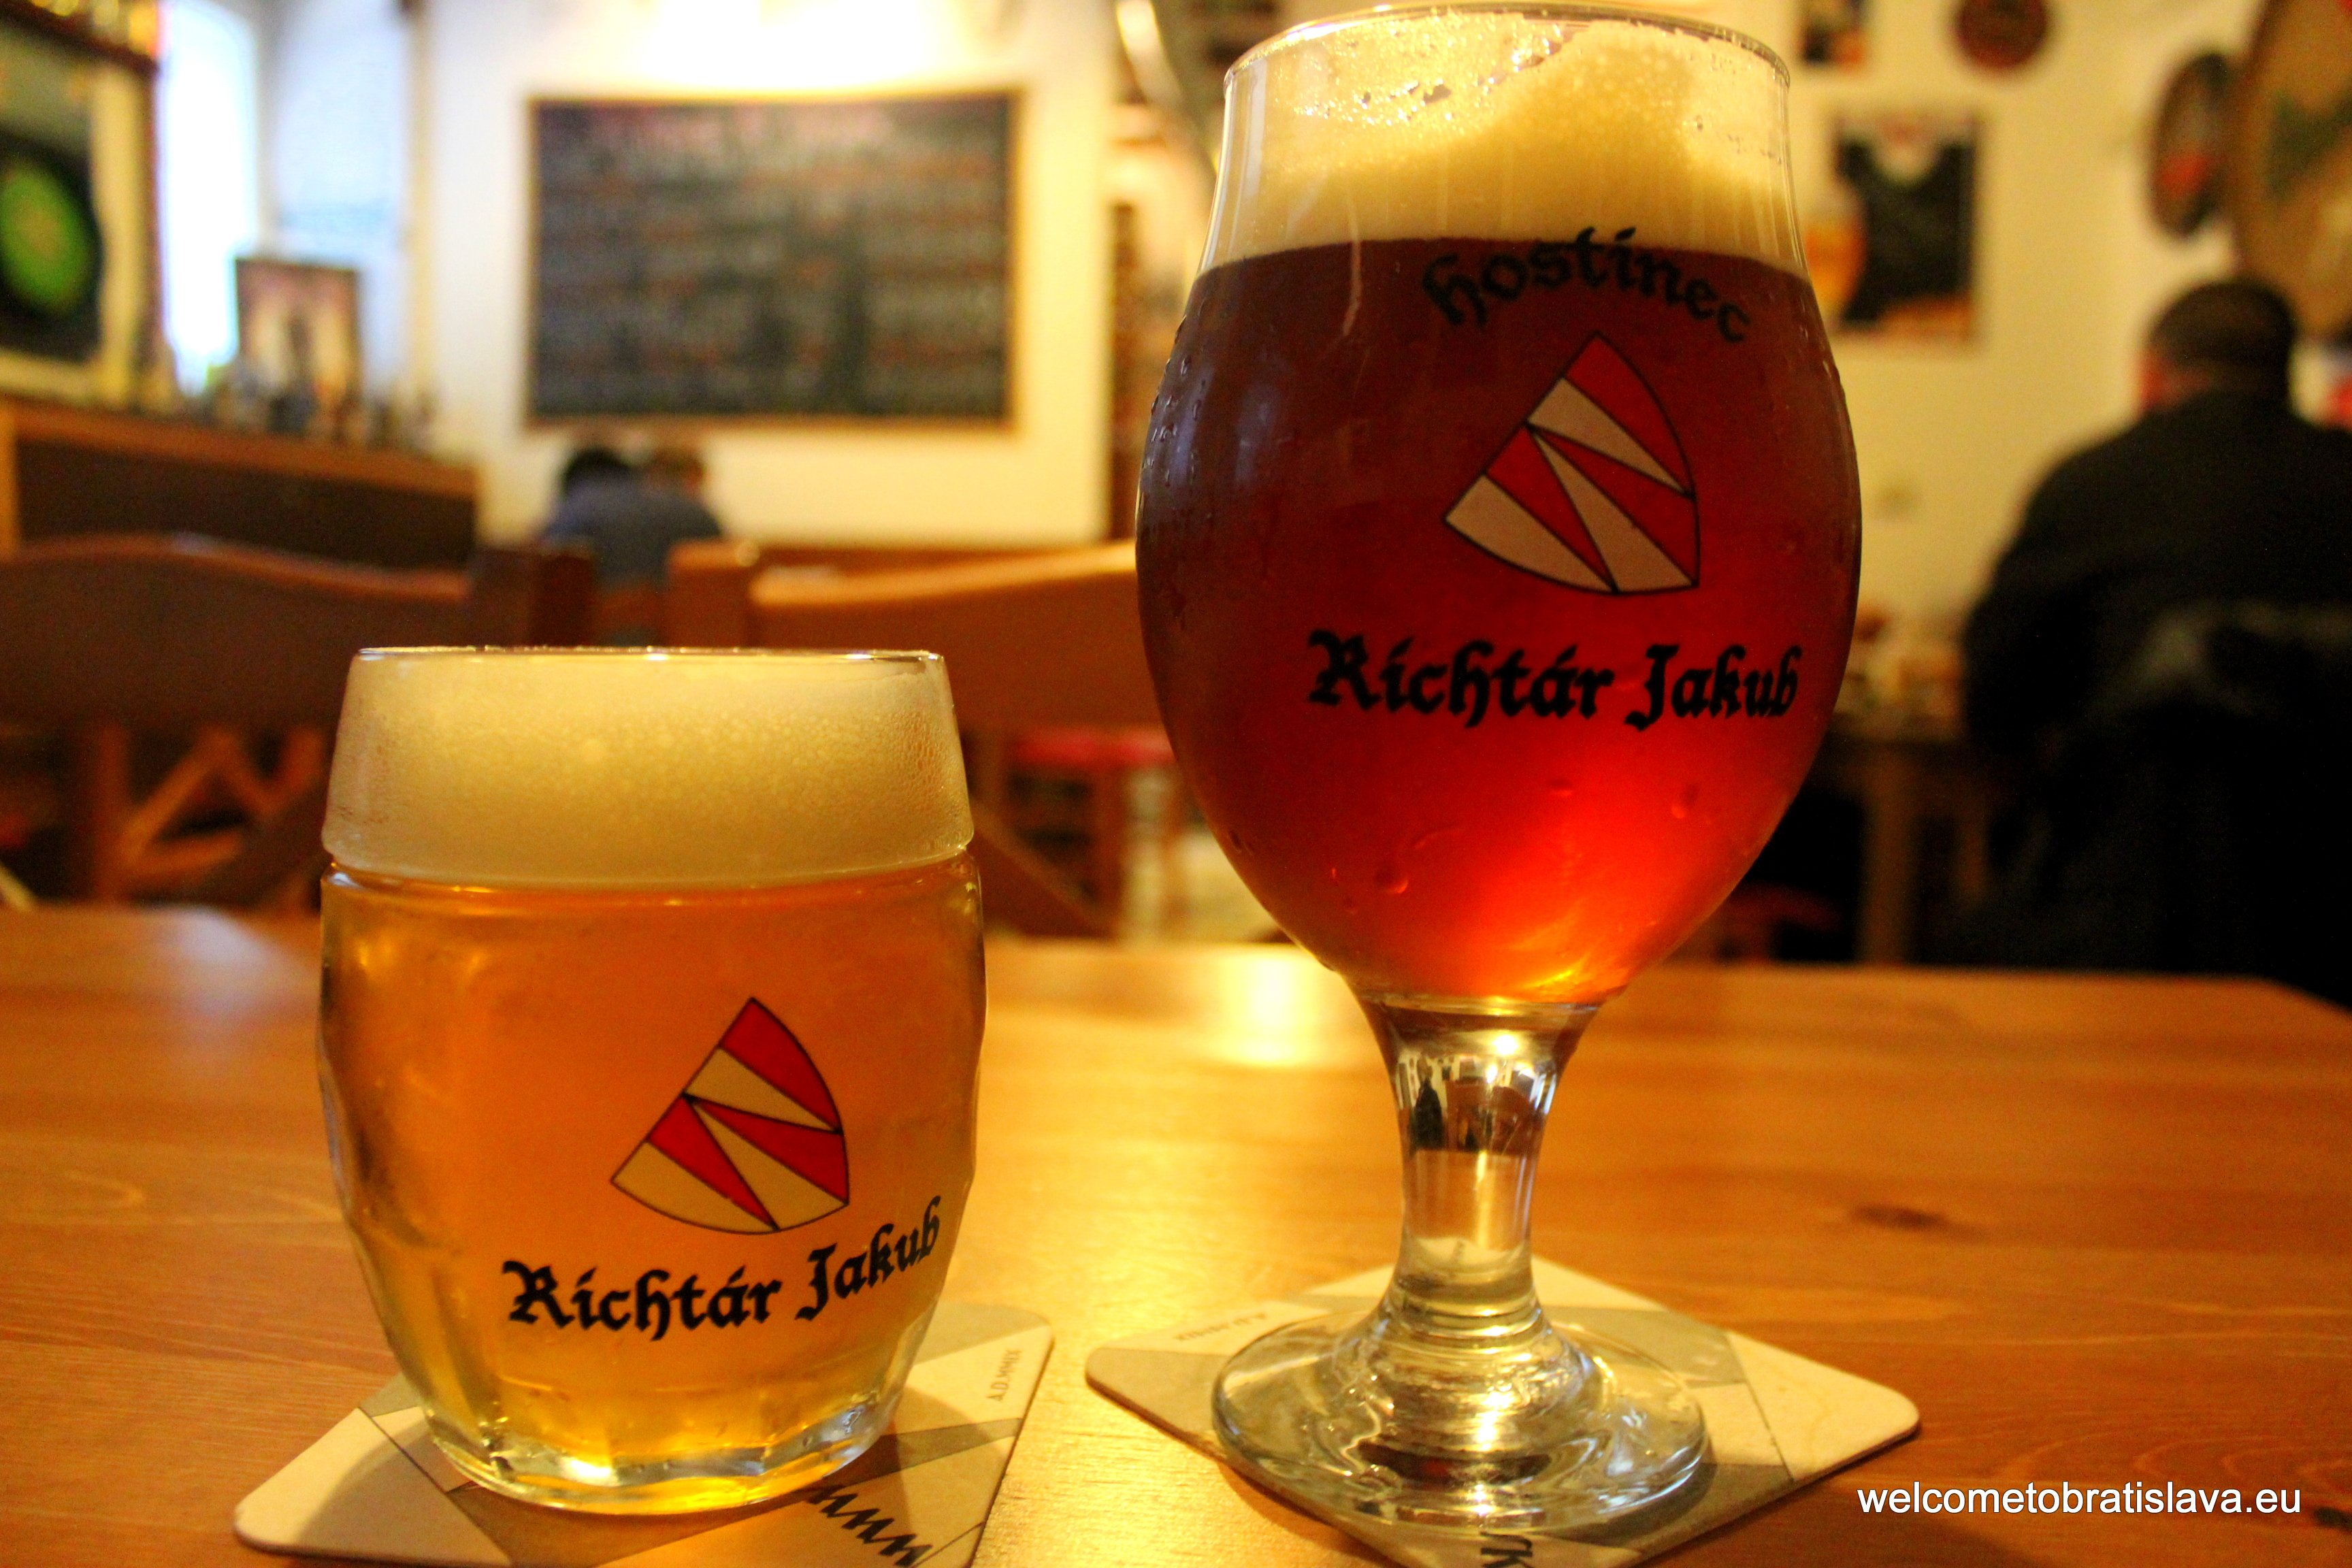 Best beer places in Bratislava - Hostinec Richtar Jakub